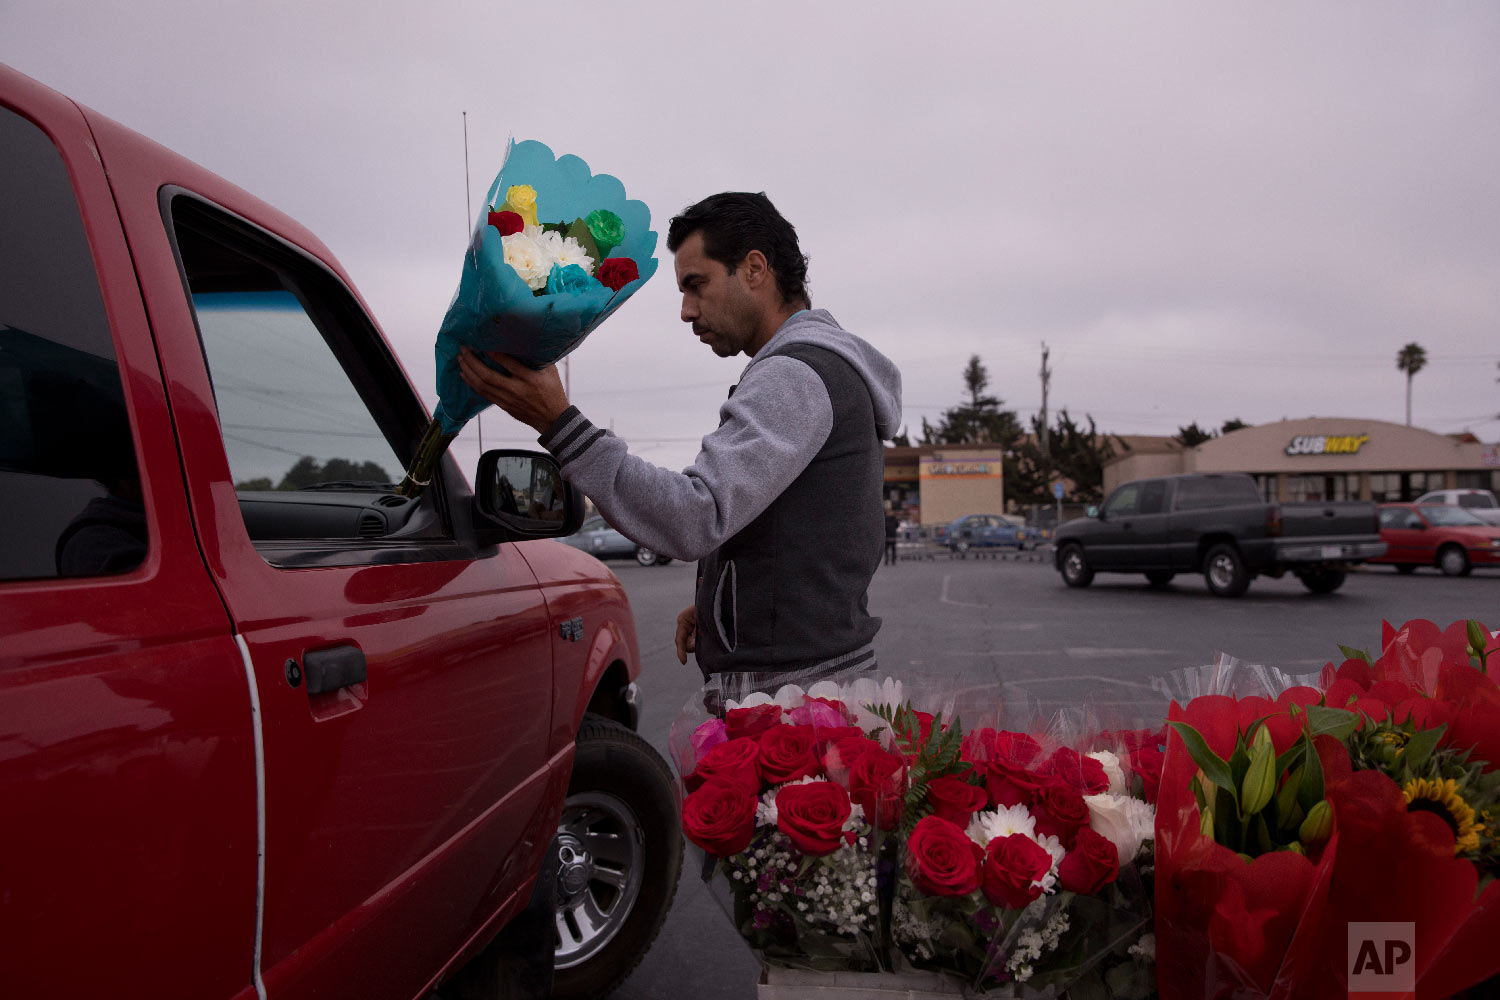 Jose Contrares, 41, who shares an apartment with seven people, sells flowers in the parking lot of a strip mall in Salinas, Calif., Sept. 4, 2018. (AP Photo/Jae C. Hong)